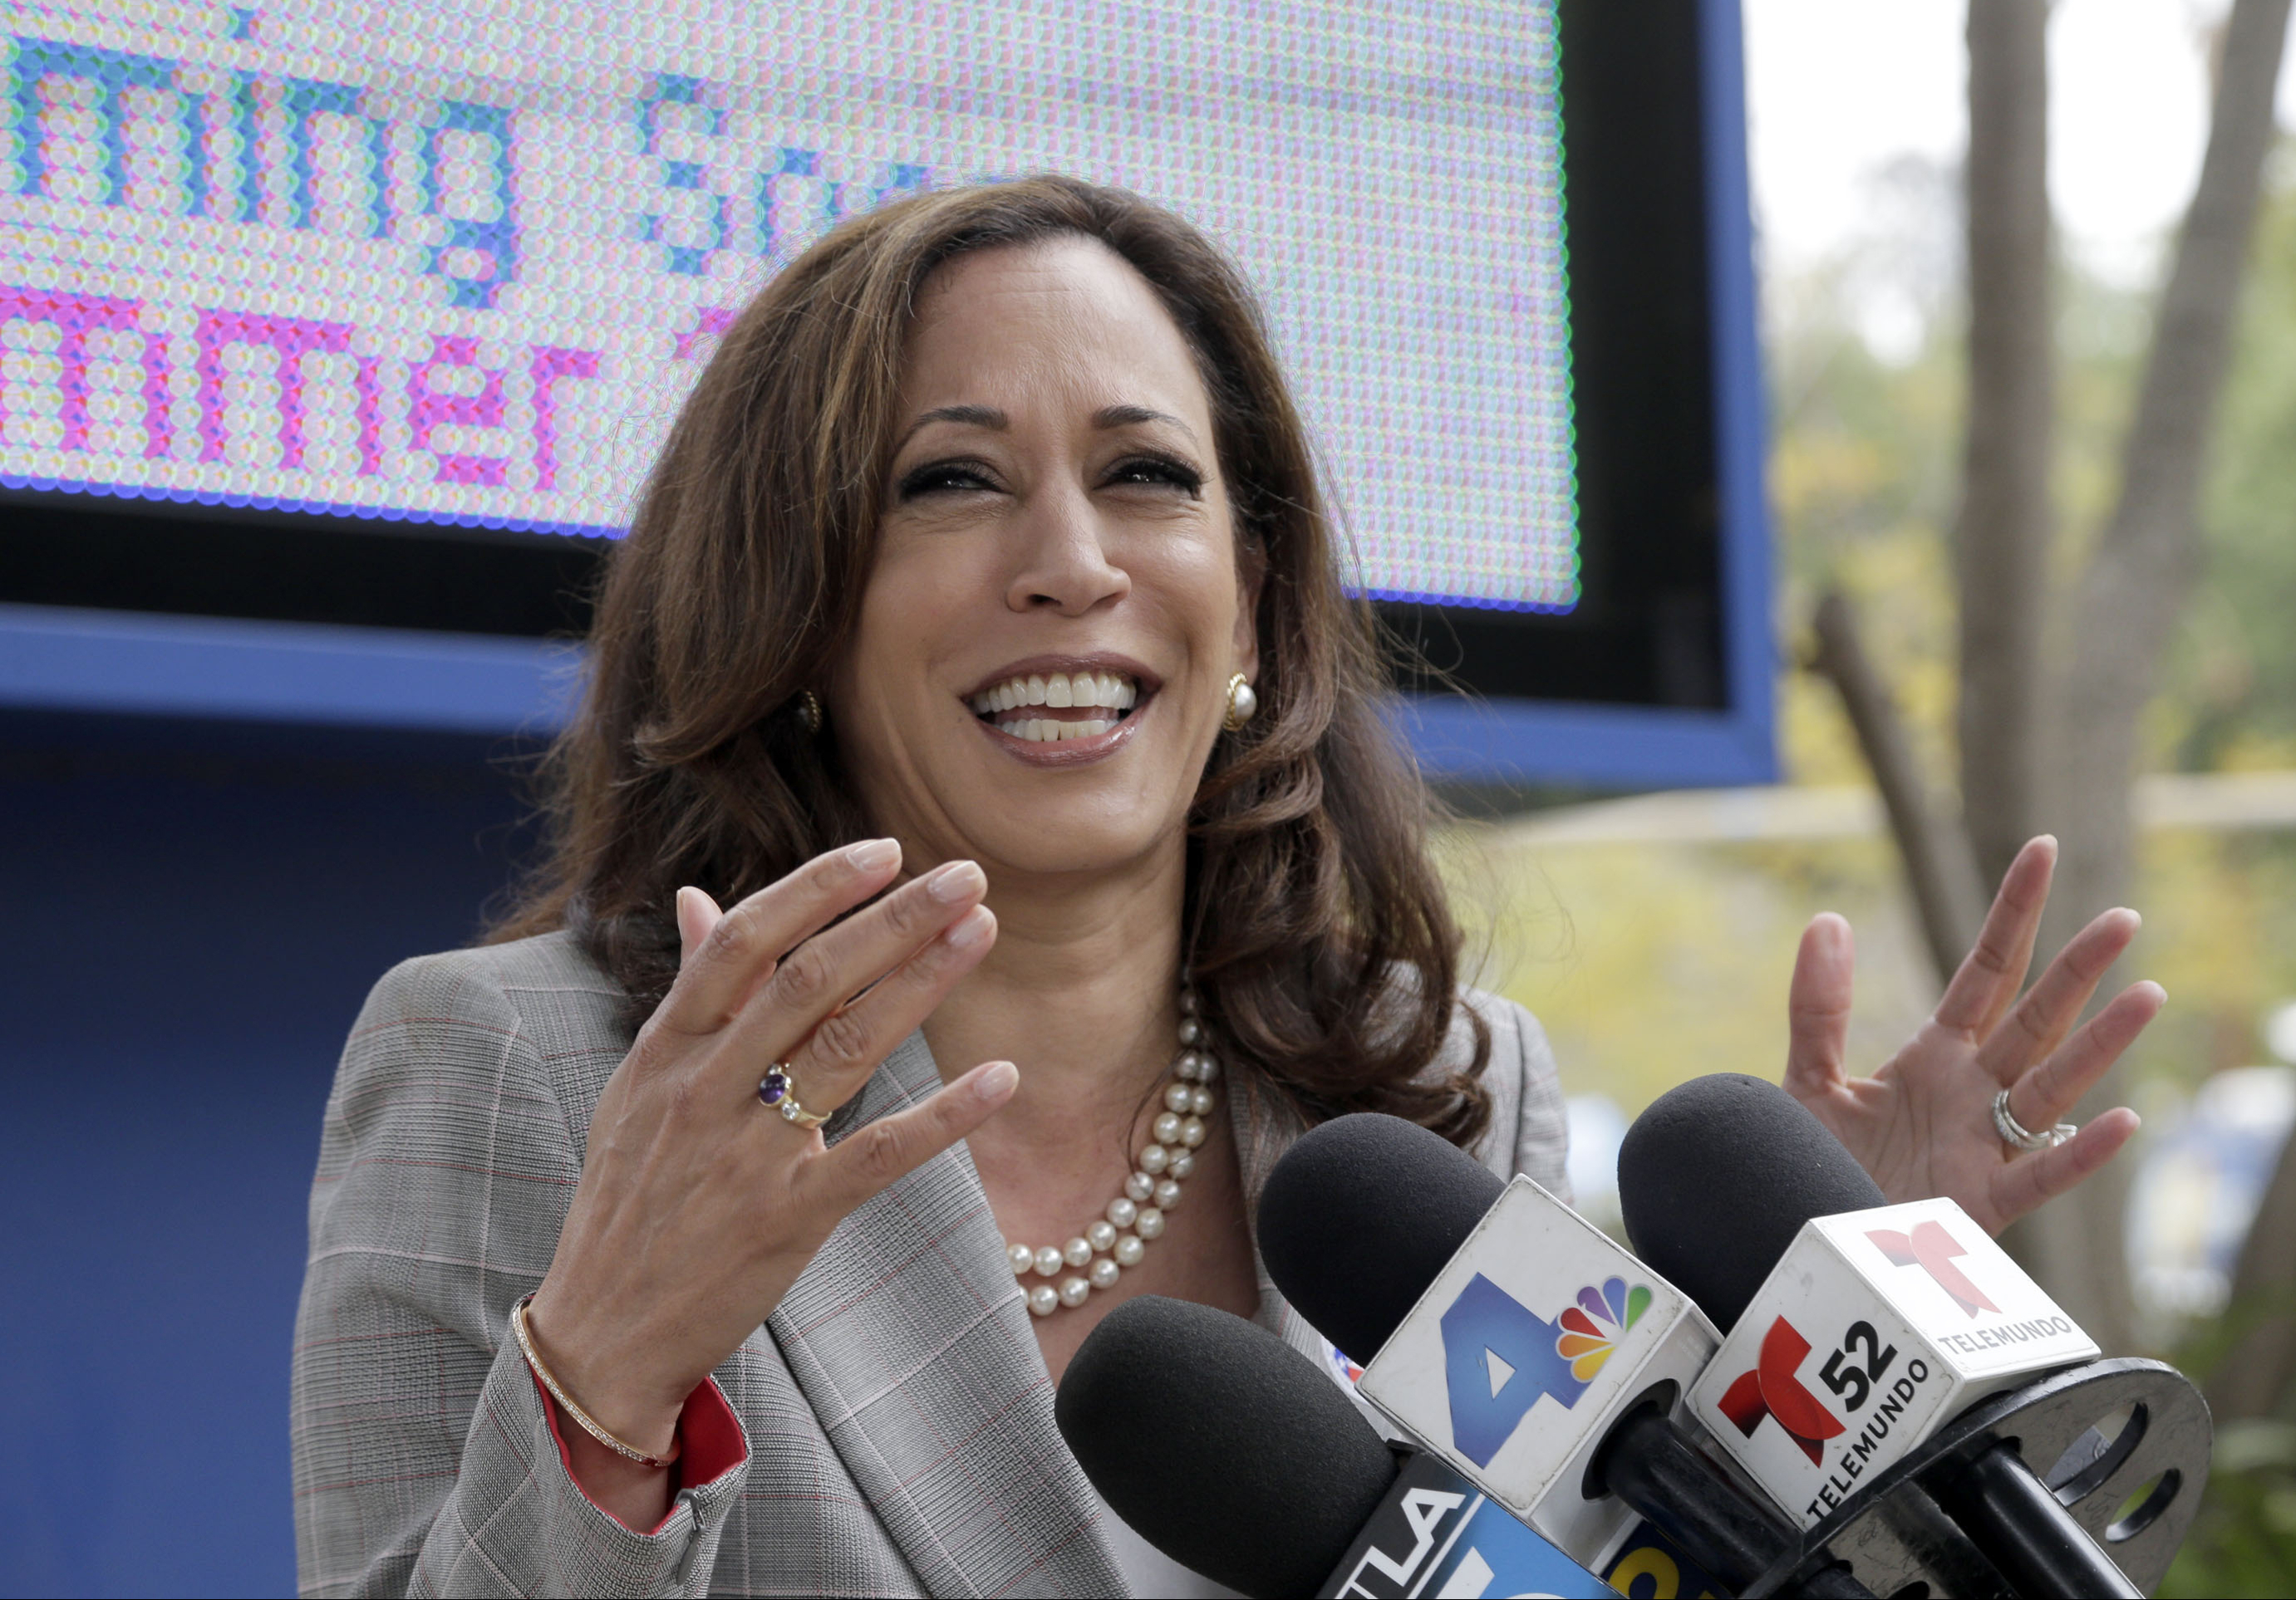 California Attorney General Kamala Harris takes questions from the media after voting at the Kenter Canyon Elementary School in Los Angeles, on Tuesday, June 7, 2016. The top two candidates for California's first open U.S. Senate seat in 24 years will advance to a runoff election in November to replace the retiring Barbara Boxer. Harris is a heavy favorite and a fellow Democrat, U.S. Rep. Loretta Sanchez, is looking to hold off three Republican challengers for second place.(AP Photo/Nick Ut)